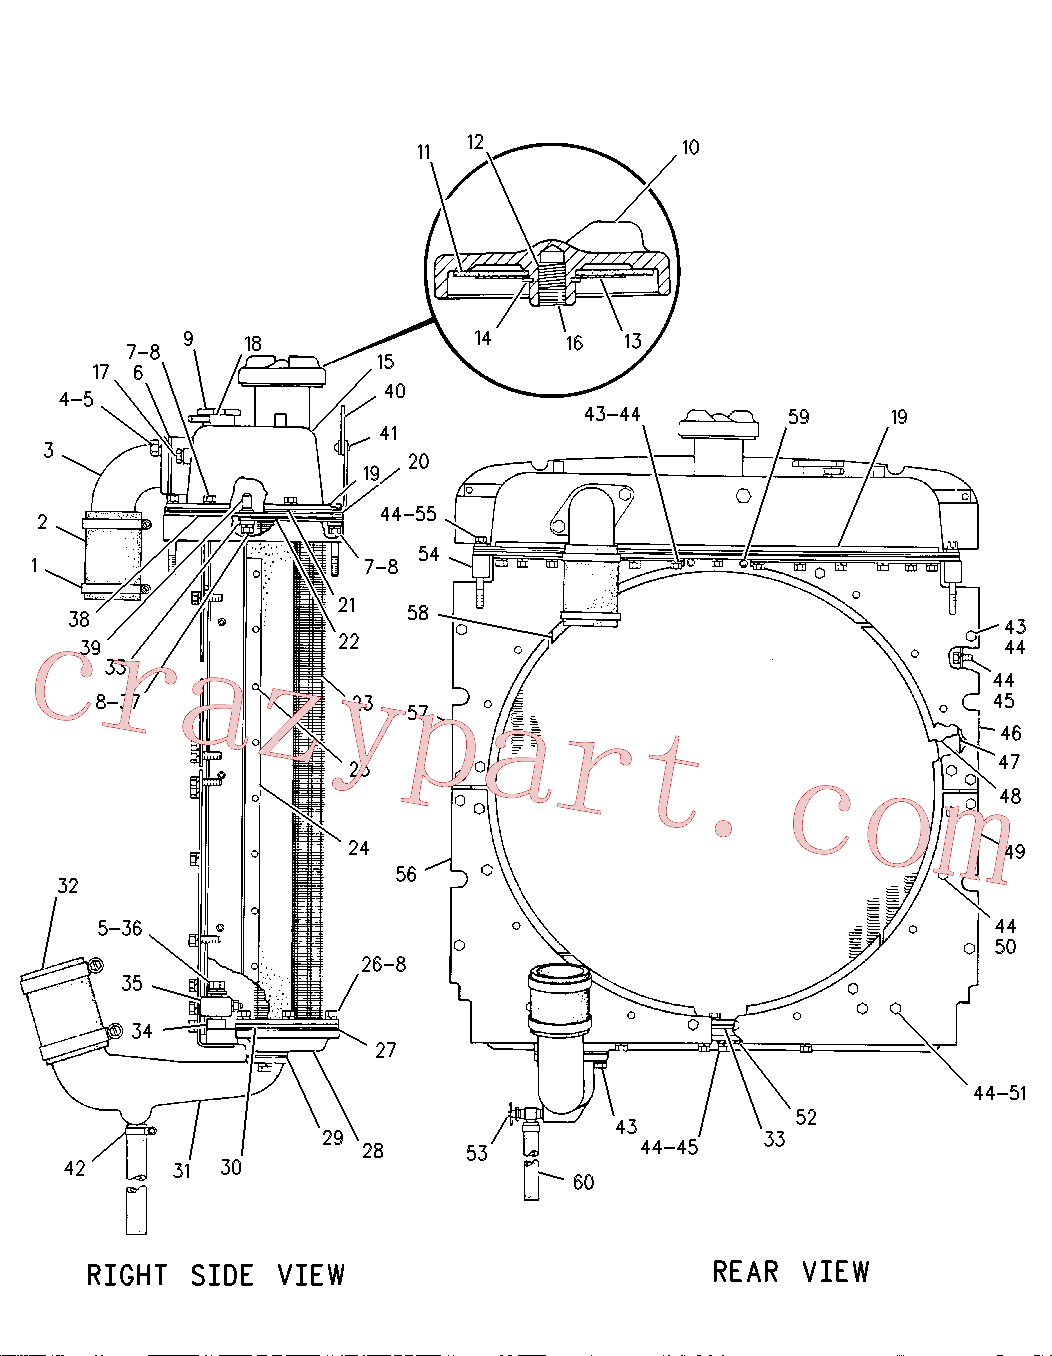 CAT 2H-8829 for 950 Wheel Loader(WTL) cooling system 2P-8185 Assembly